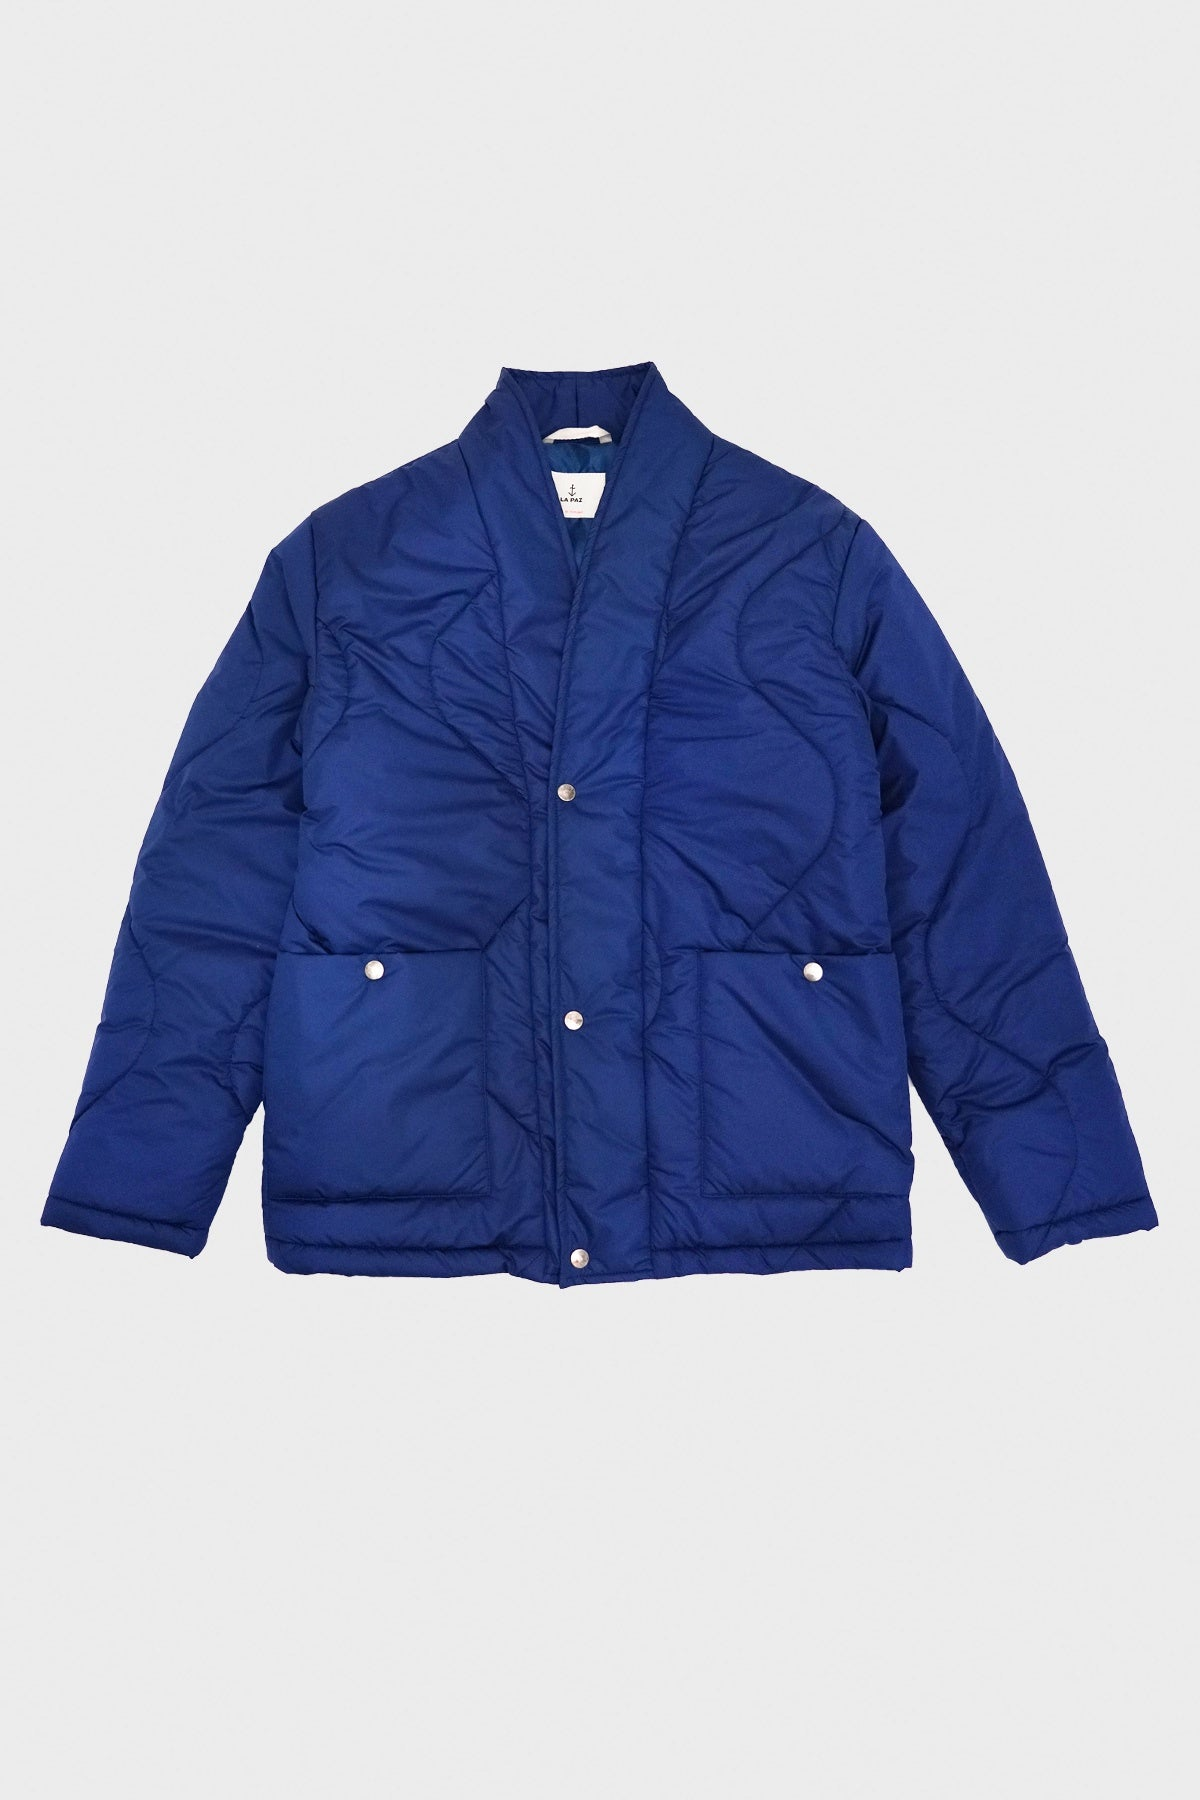 La Paz - Barbosa Padded Jacket - Blue - Canoe Club